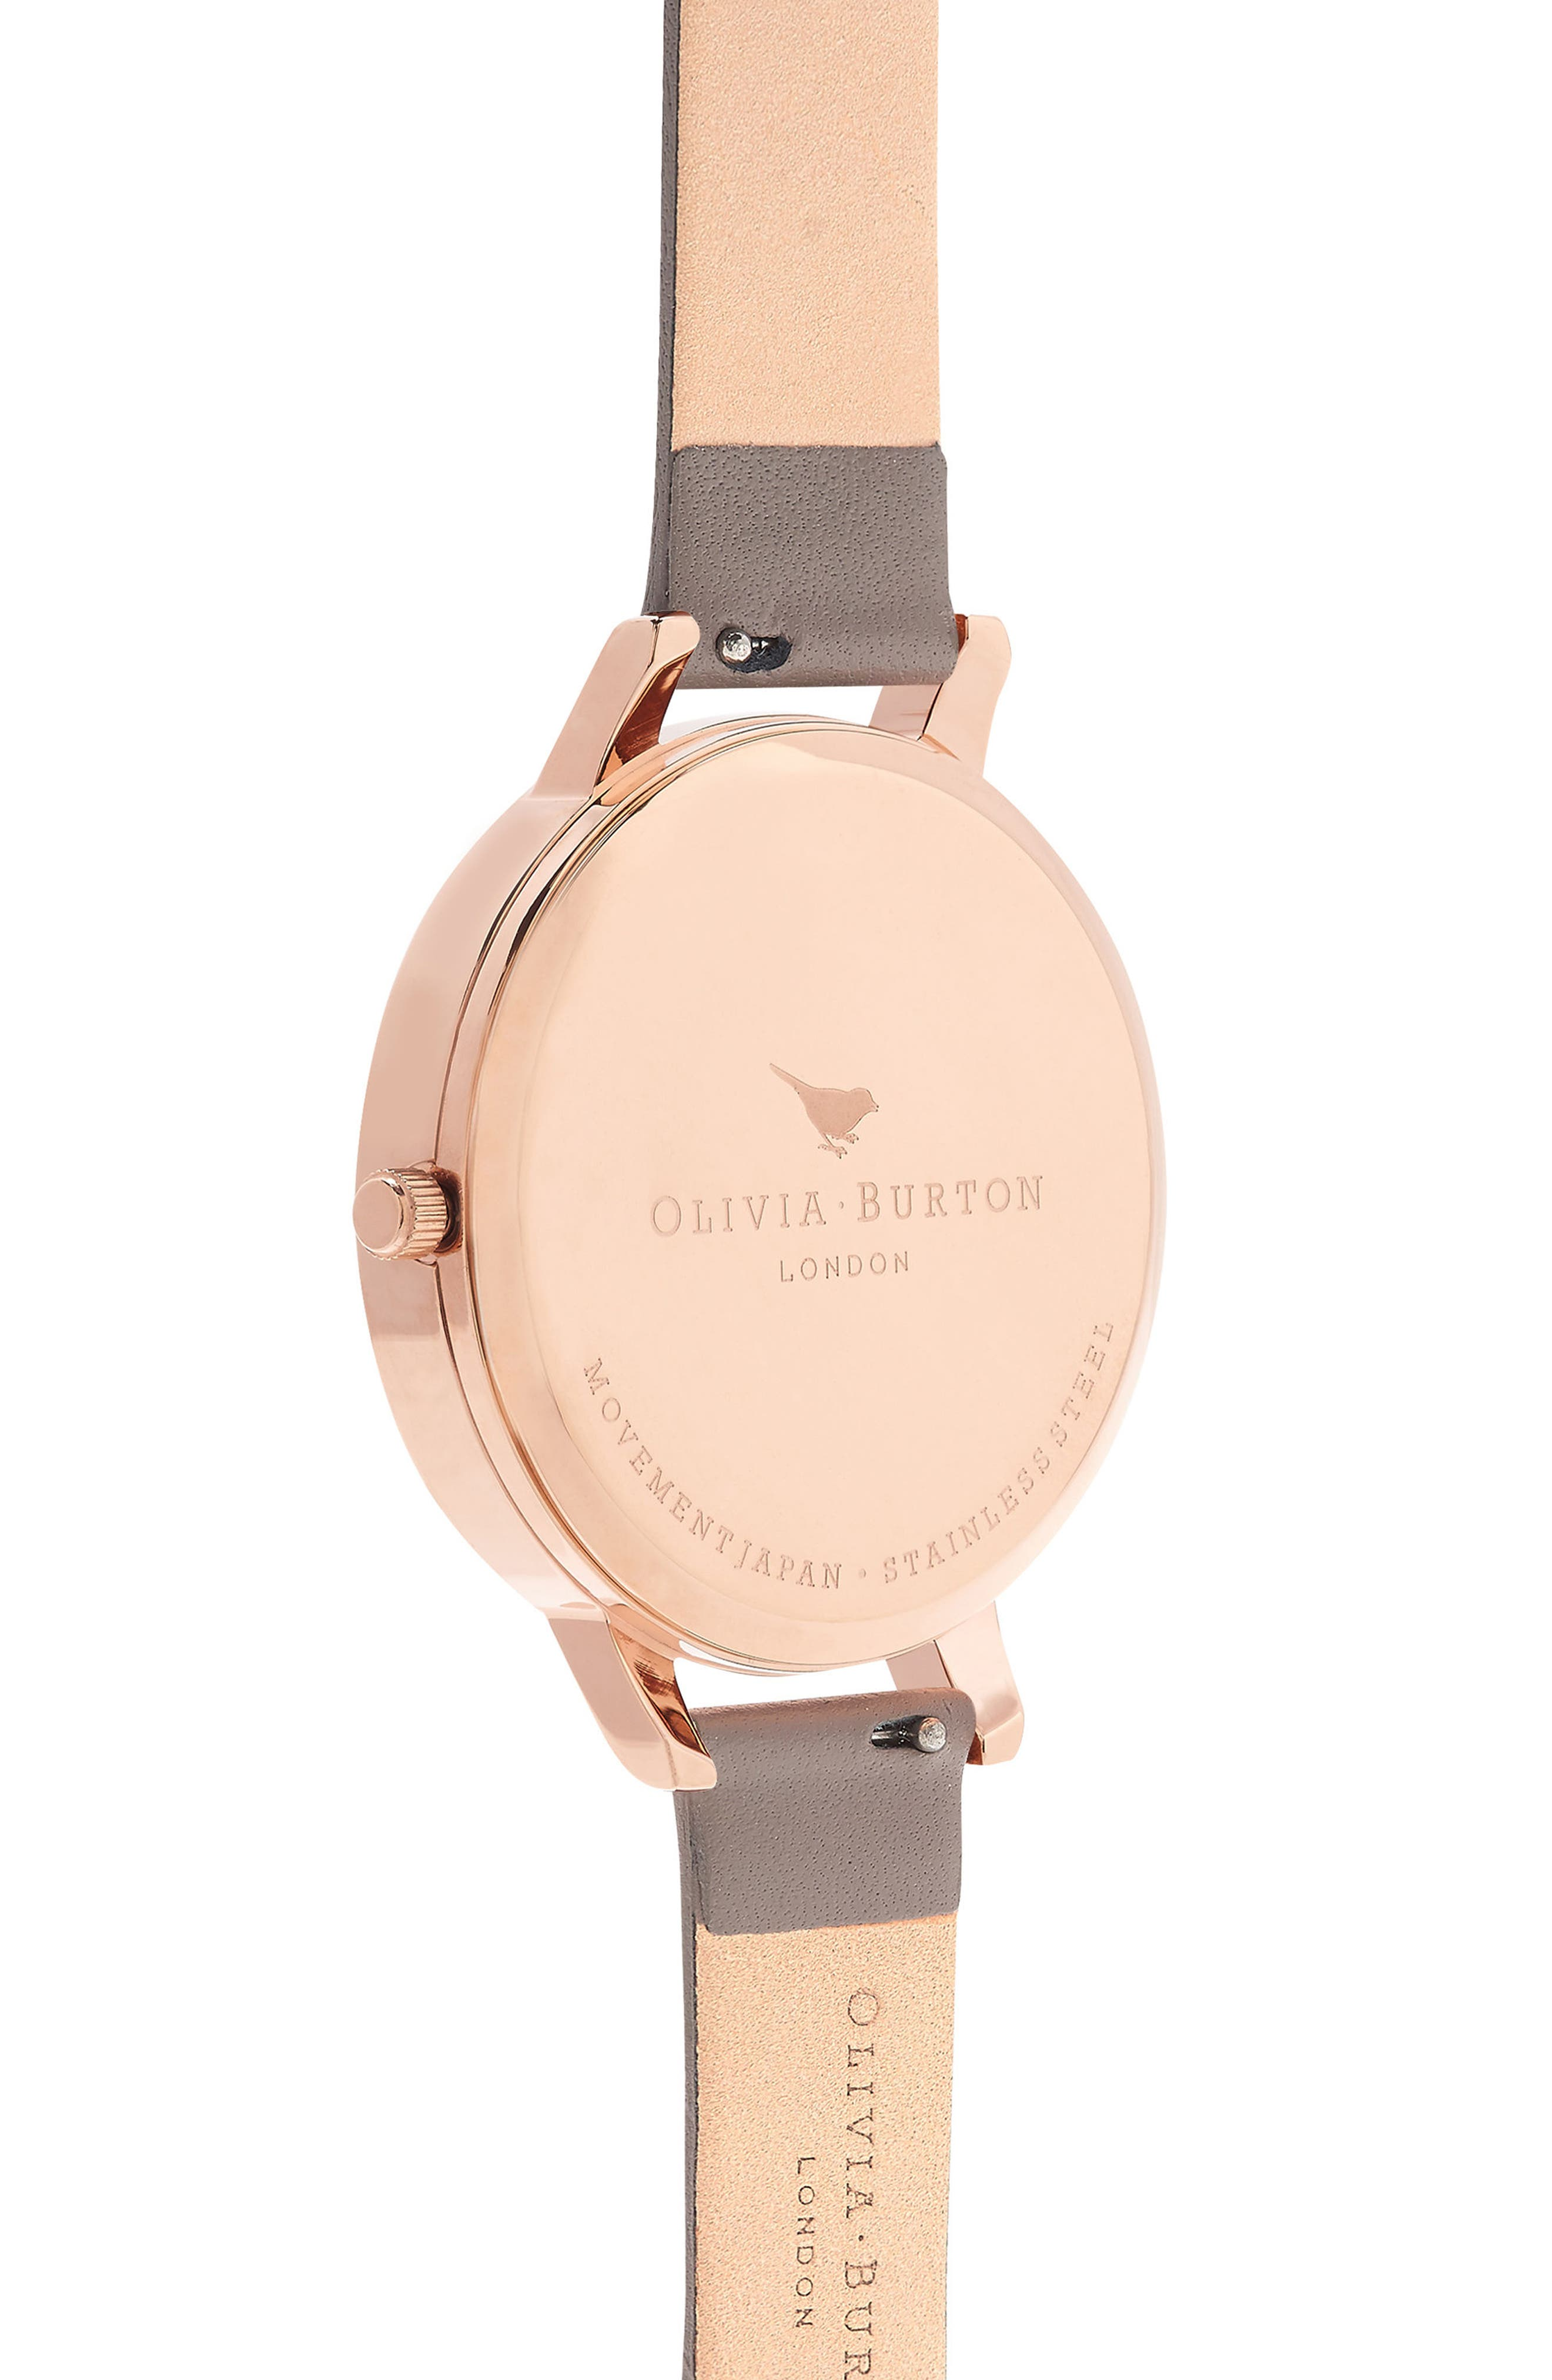 Floral Bouquet Leather Strap Watch, 38mm,                             Alternate thumbnail 3, color,                             London Grey/ Grey/ Rose Gold